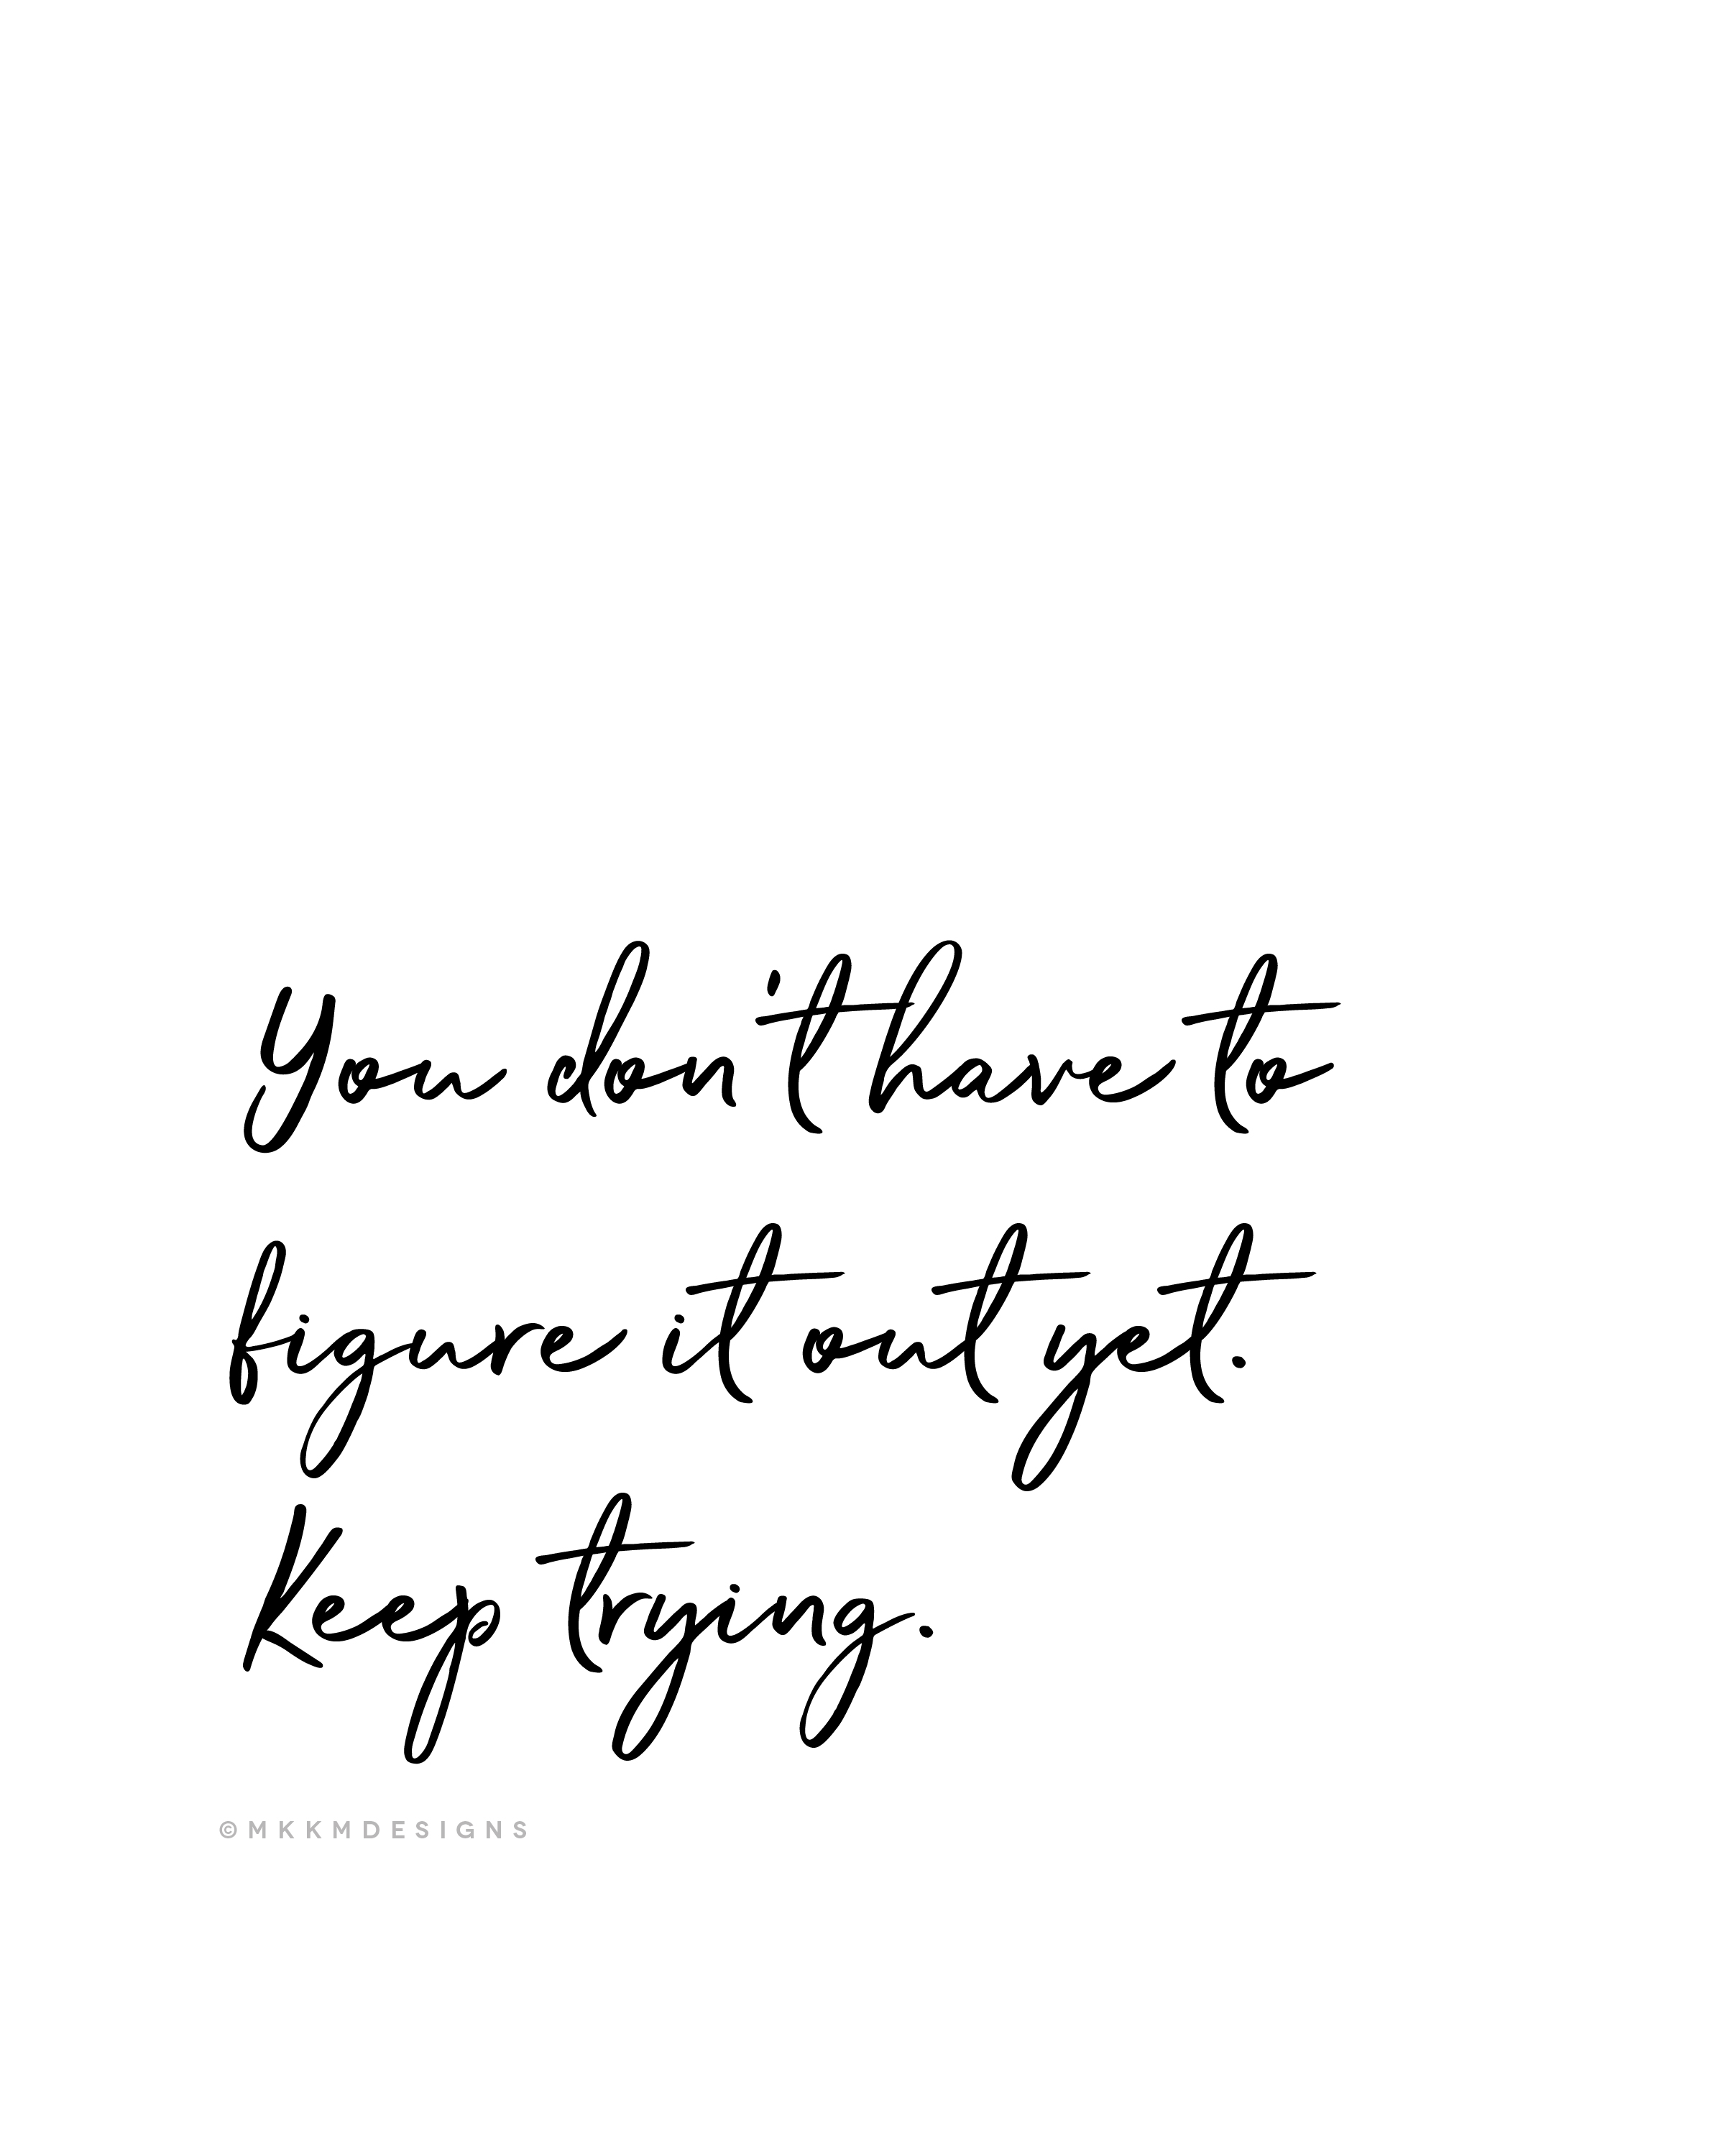 you don't have to figure it out yet. keep trying. ✦ Quote of the day ✦ monday motivation // ✦ mkkmdesigns